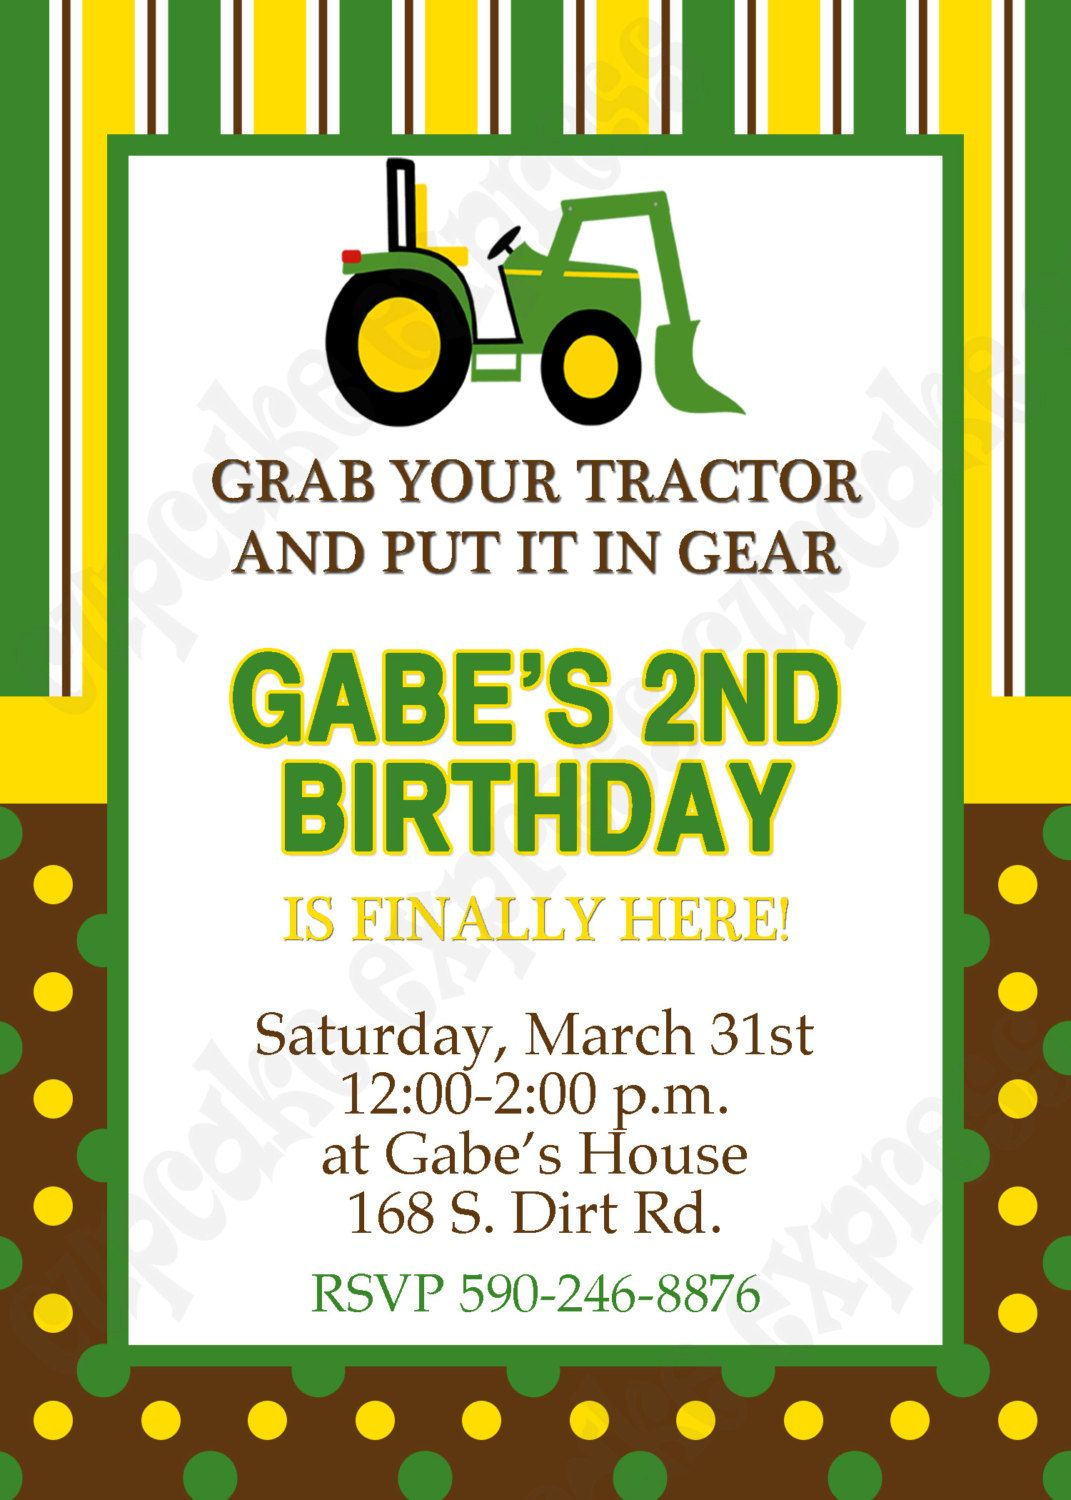 DIY John Deere 1 PRINTABLE Birthday Party Invitation Green Brown Yellow Tractor 1000 Via Etsy